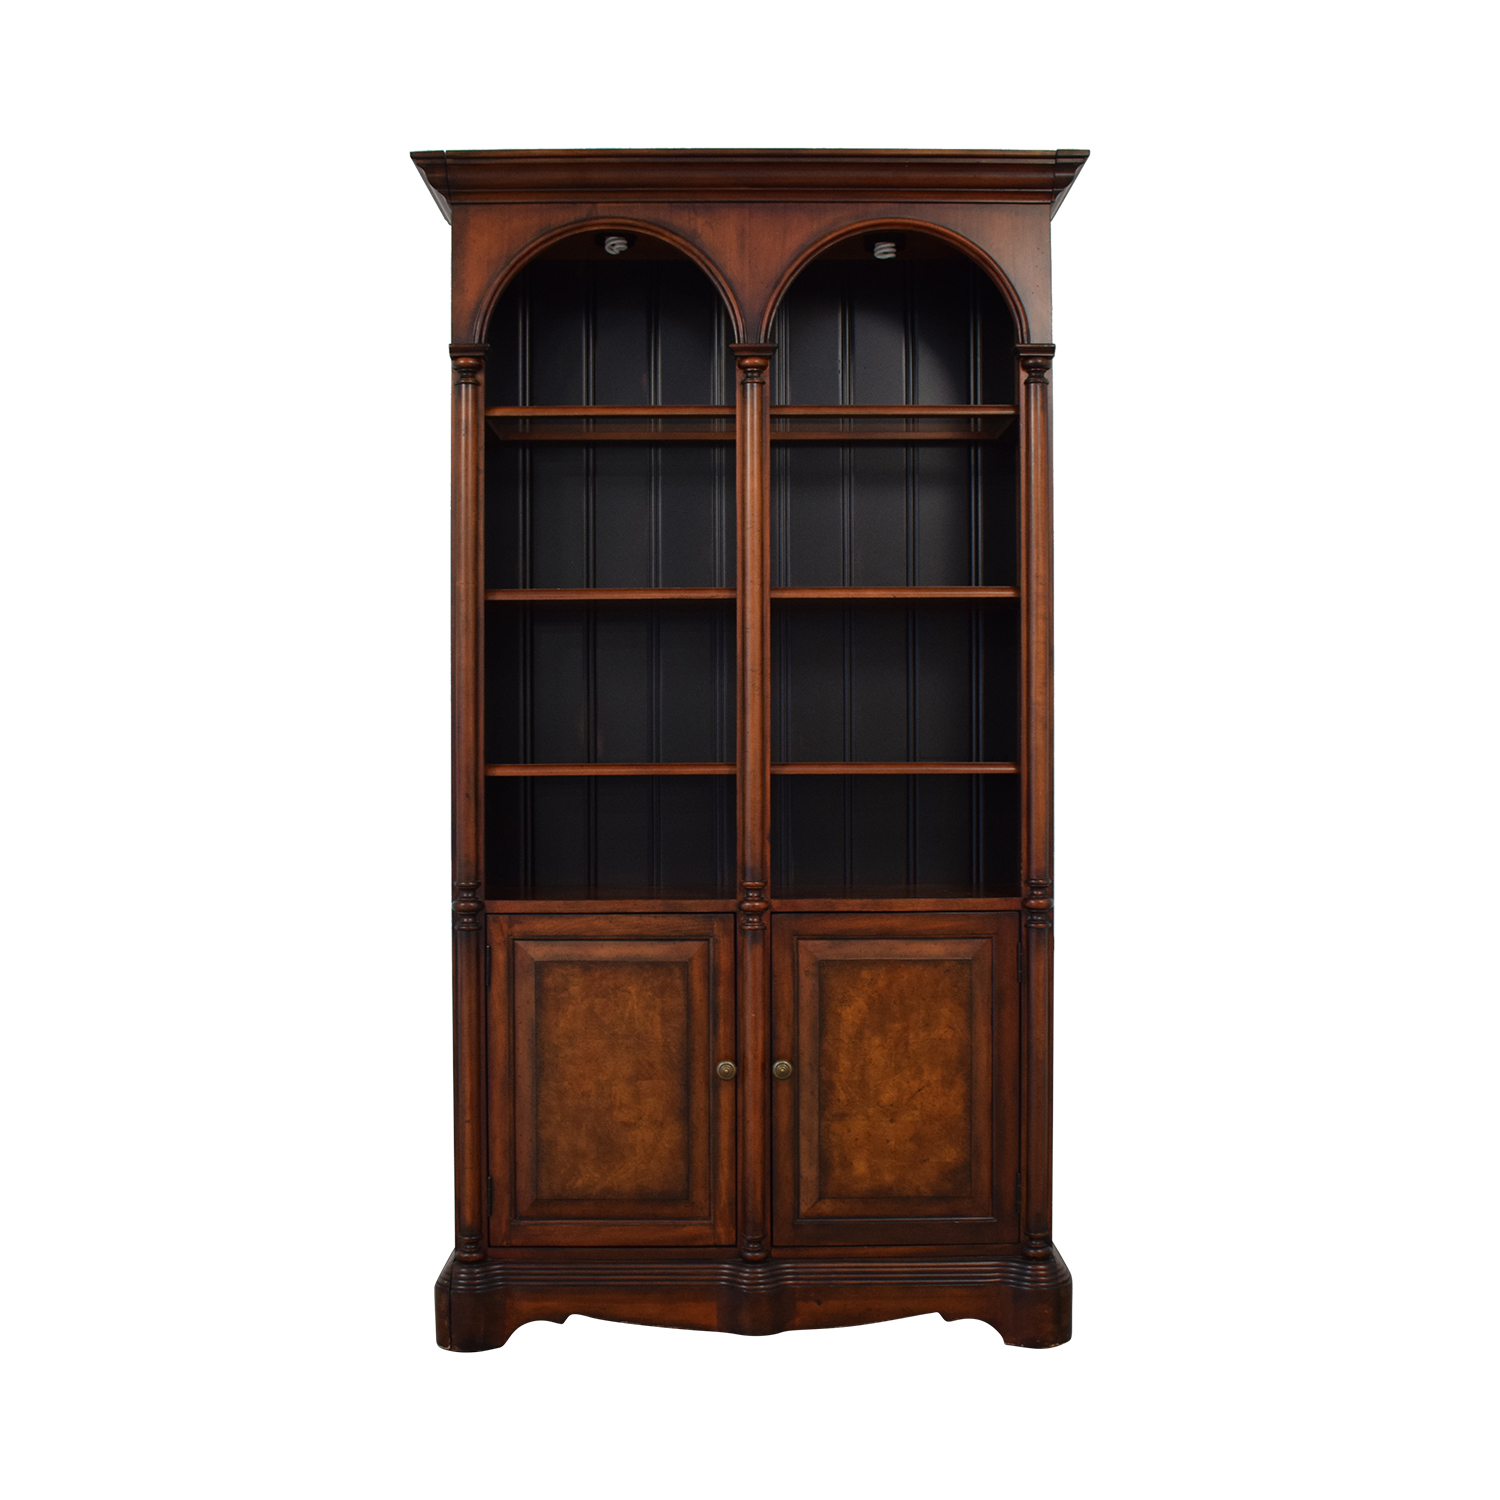 Hooker Furniture Hooker Furniture Bunching Bookcase used